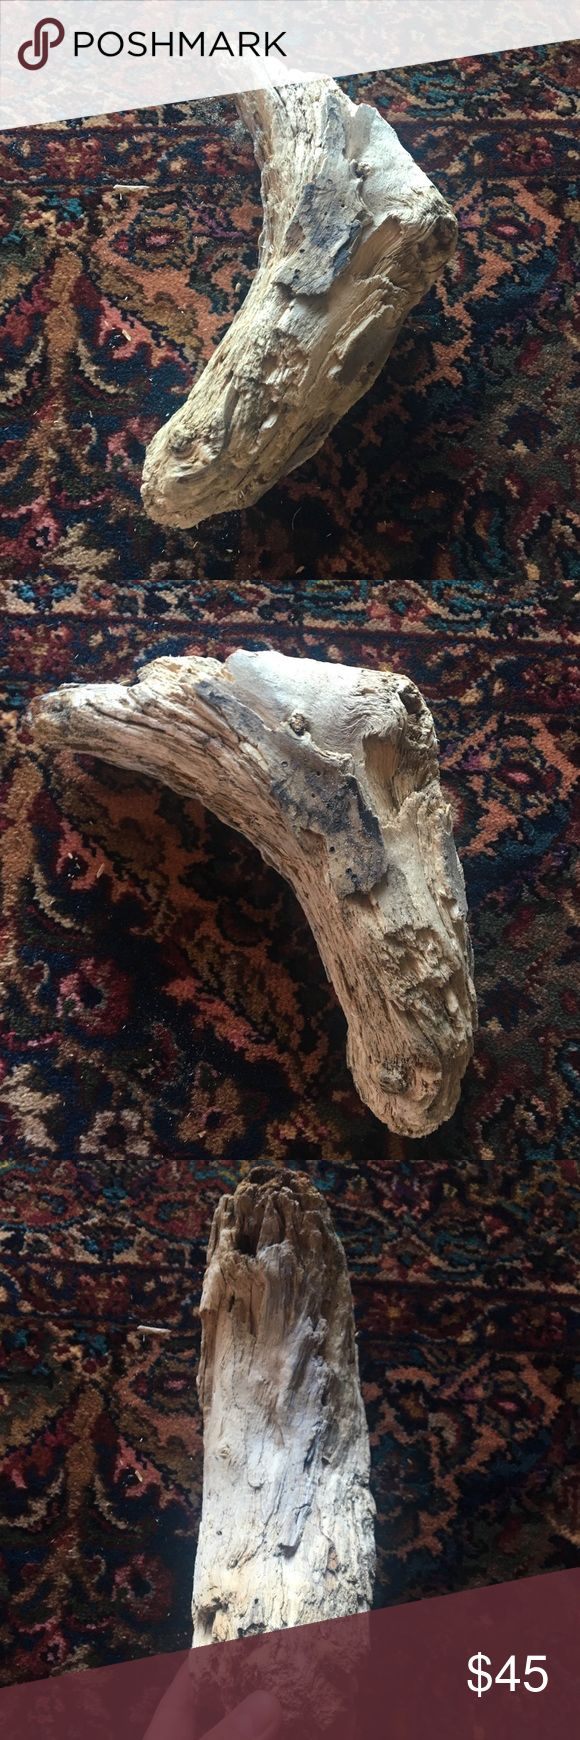 San Francisco Driftwood Original & Authentic Californian driftwood. Picked and curated from a undisclosed beach in San Francisco. Smell the ocean and taste the sand from the prestigious west coast. This piece is Alive. Accessories